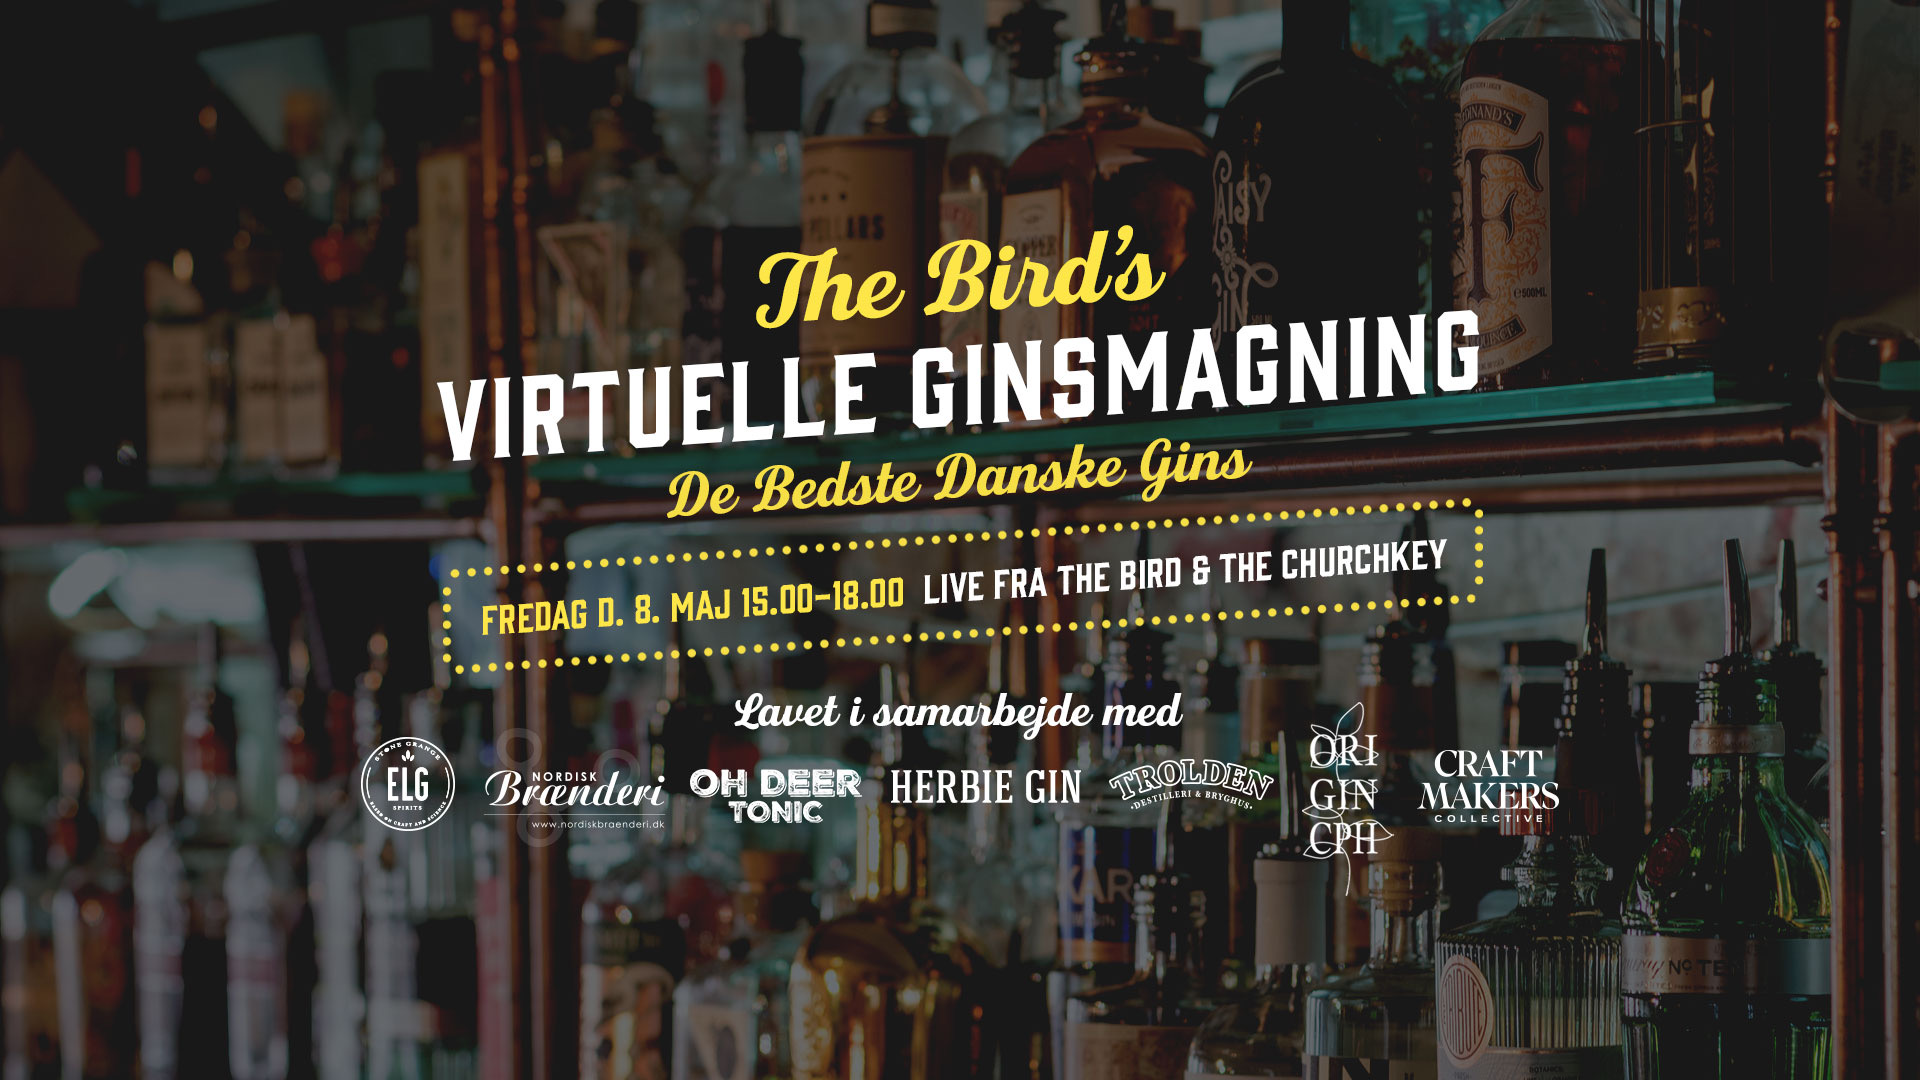 The Bird's Virtuelle Ginsmagning